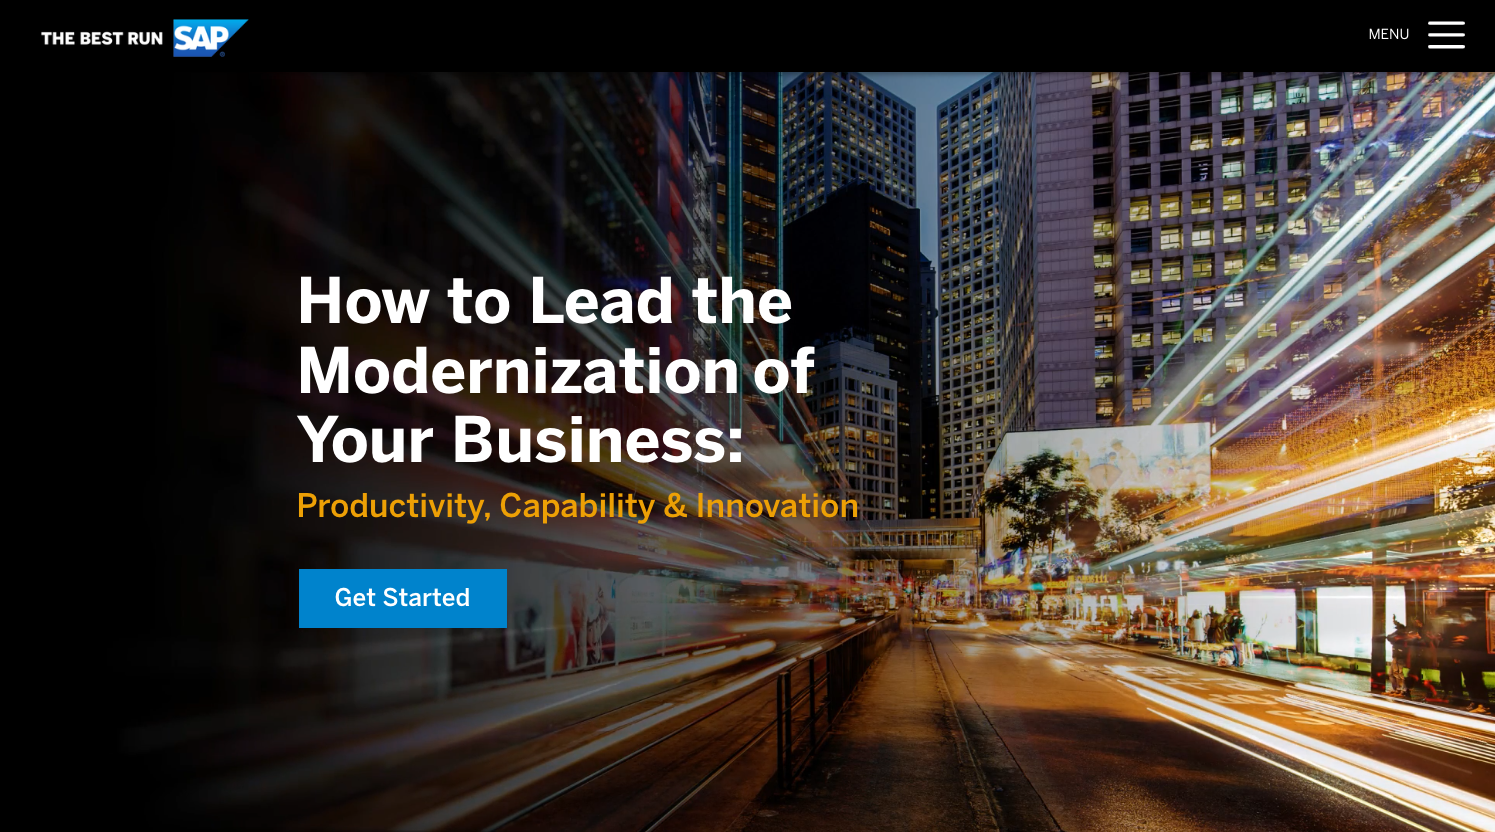 How to Lead the Modernization of Your Business | Expert Advice